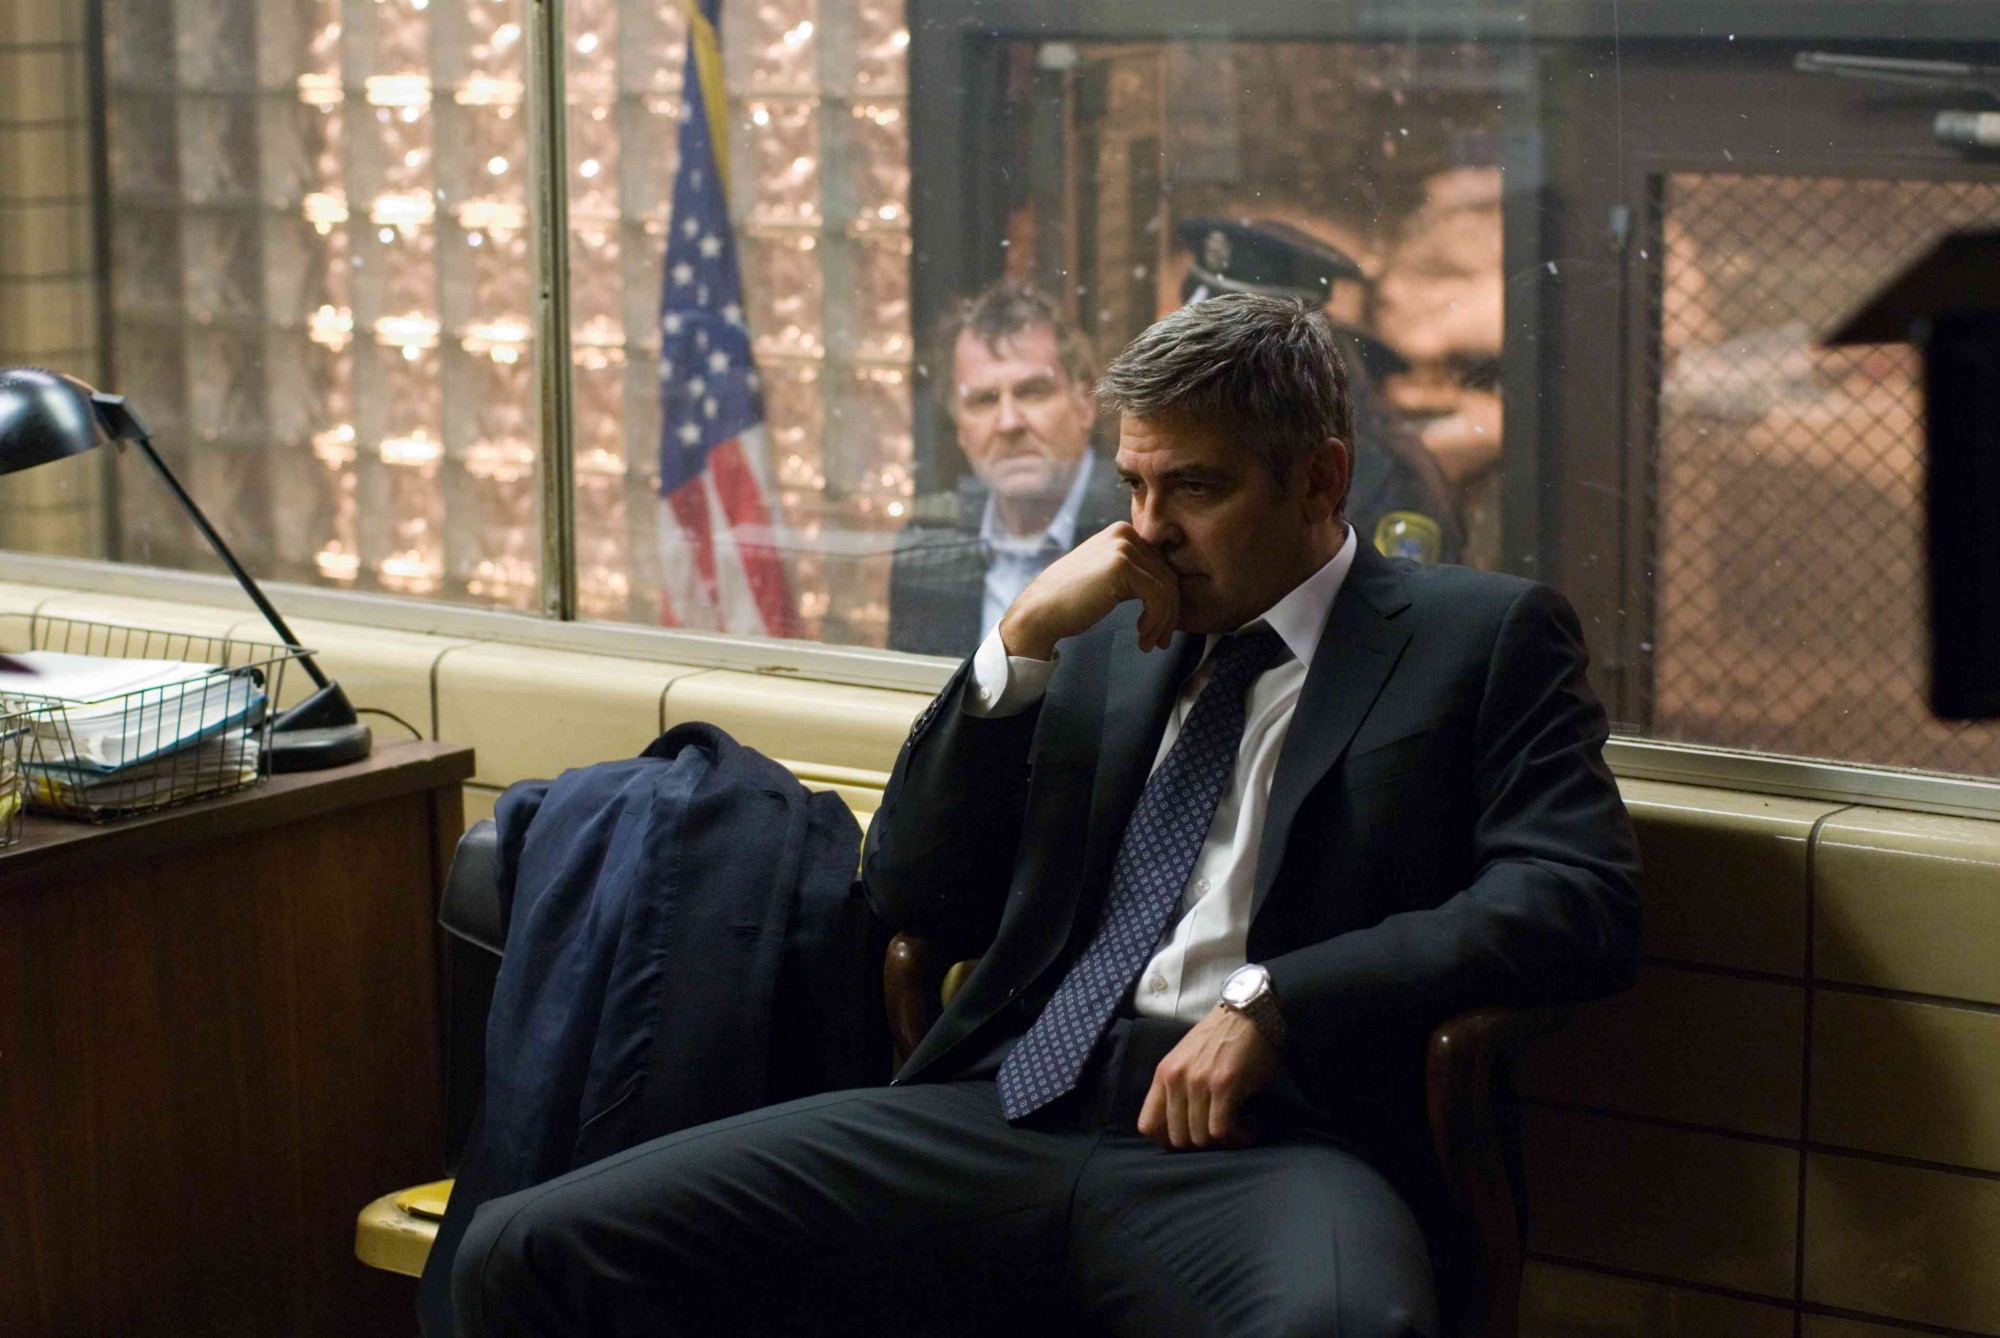 Even ten years later, 'Michael Clayton' remains utterly enigmatic